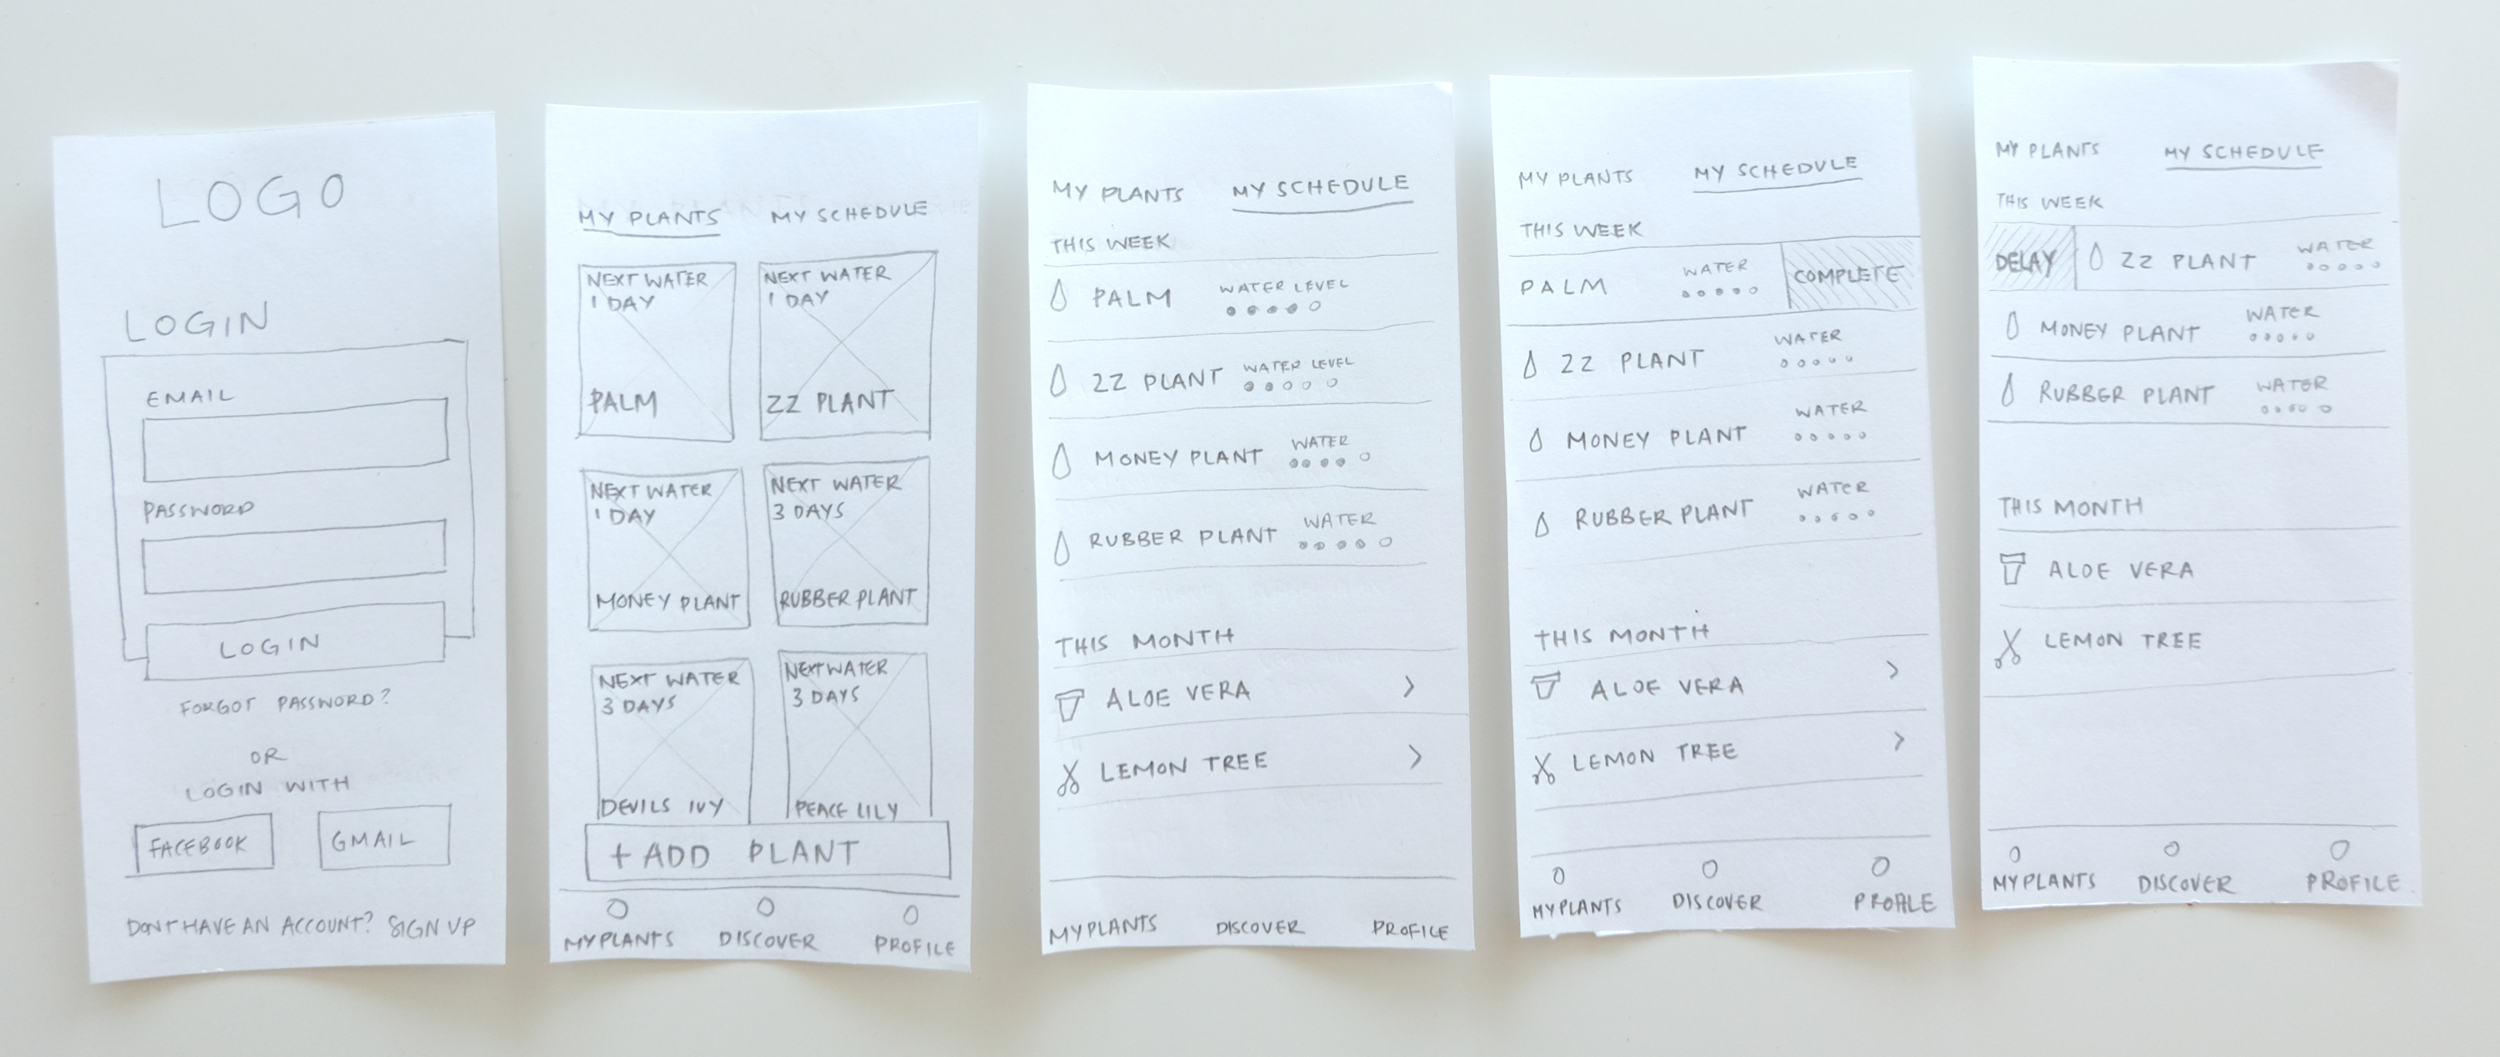 Hand drawn wireframes of login, my plants and plant schedule